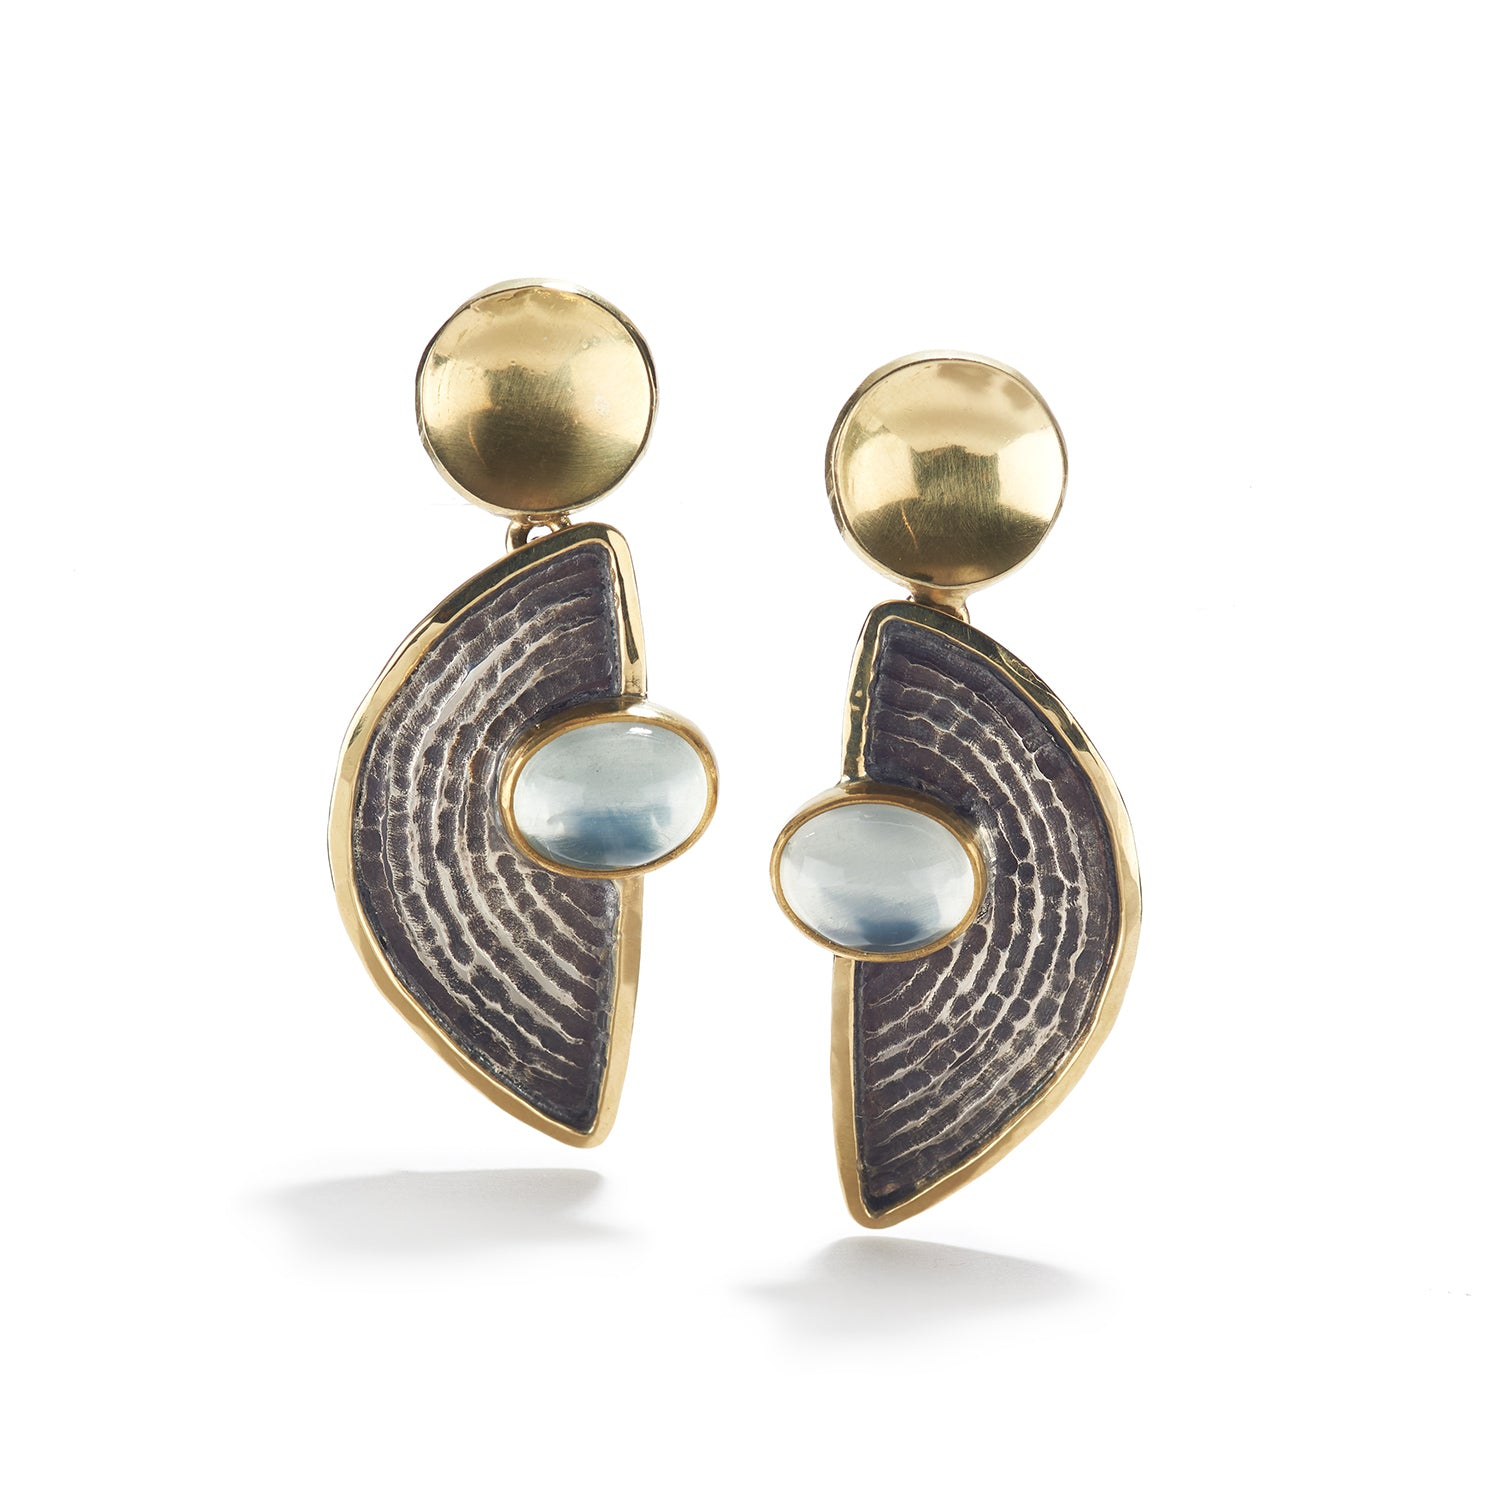 Silver, Gold and Moonstone Earrings